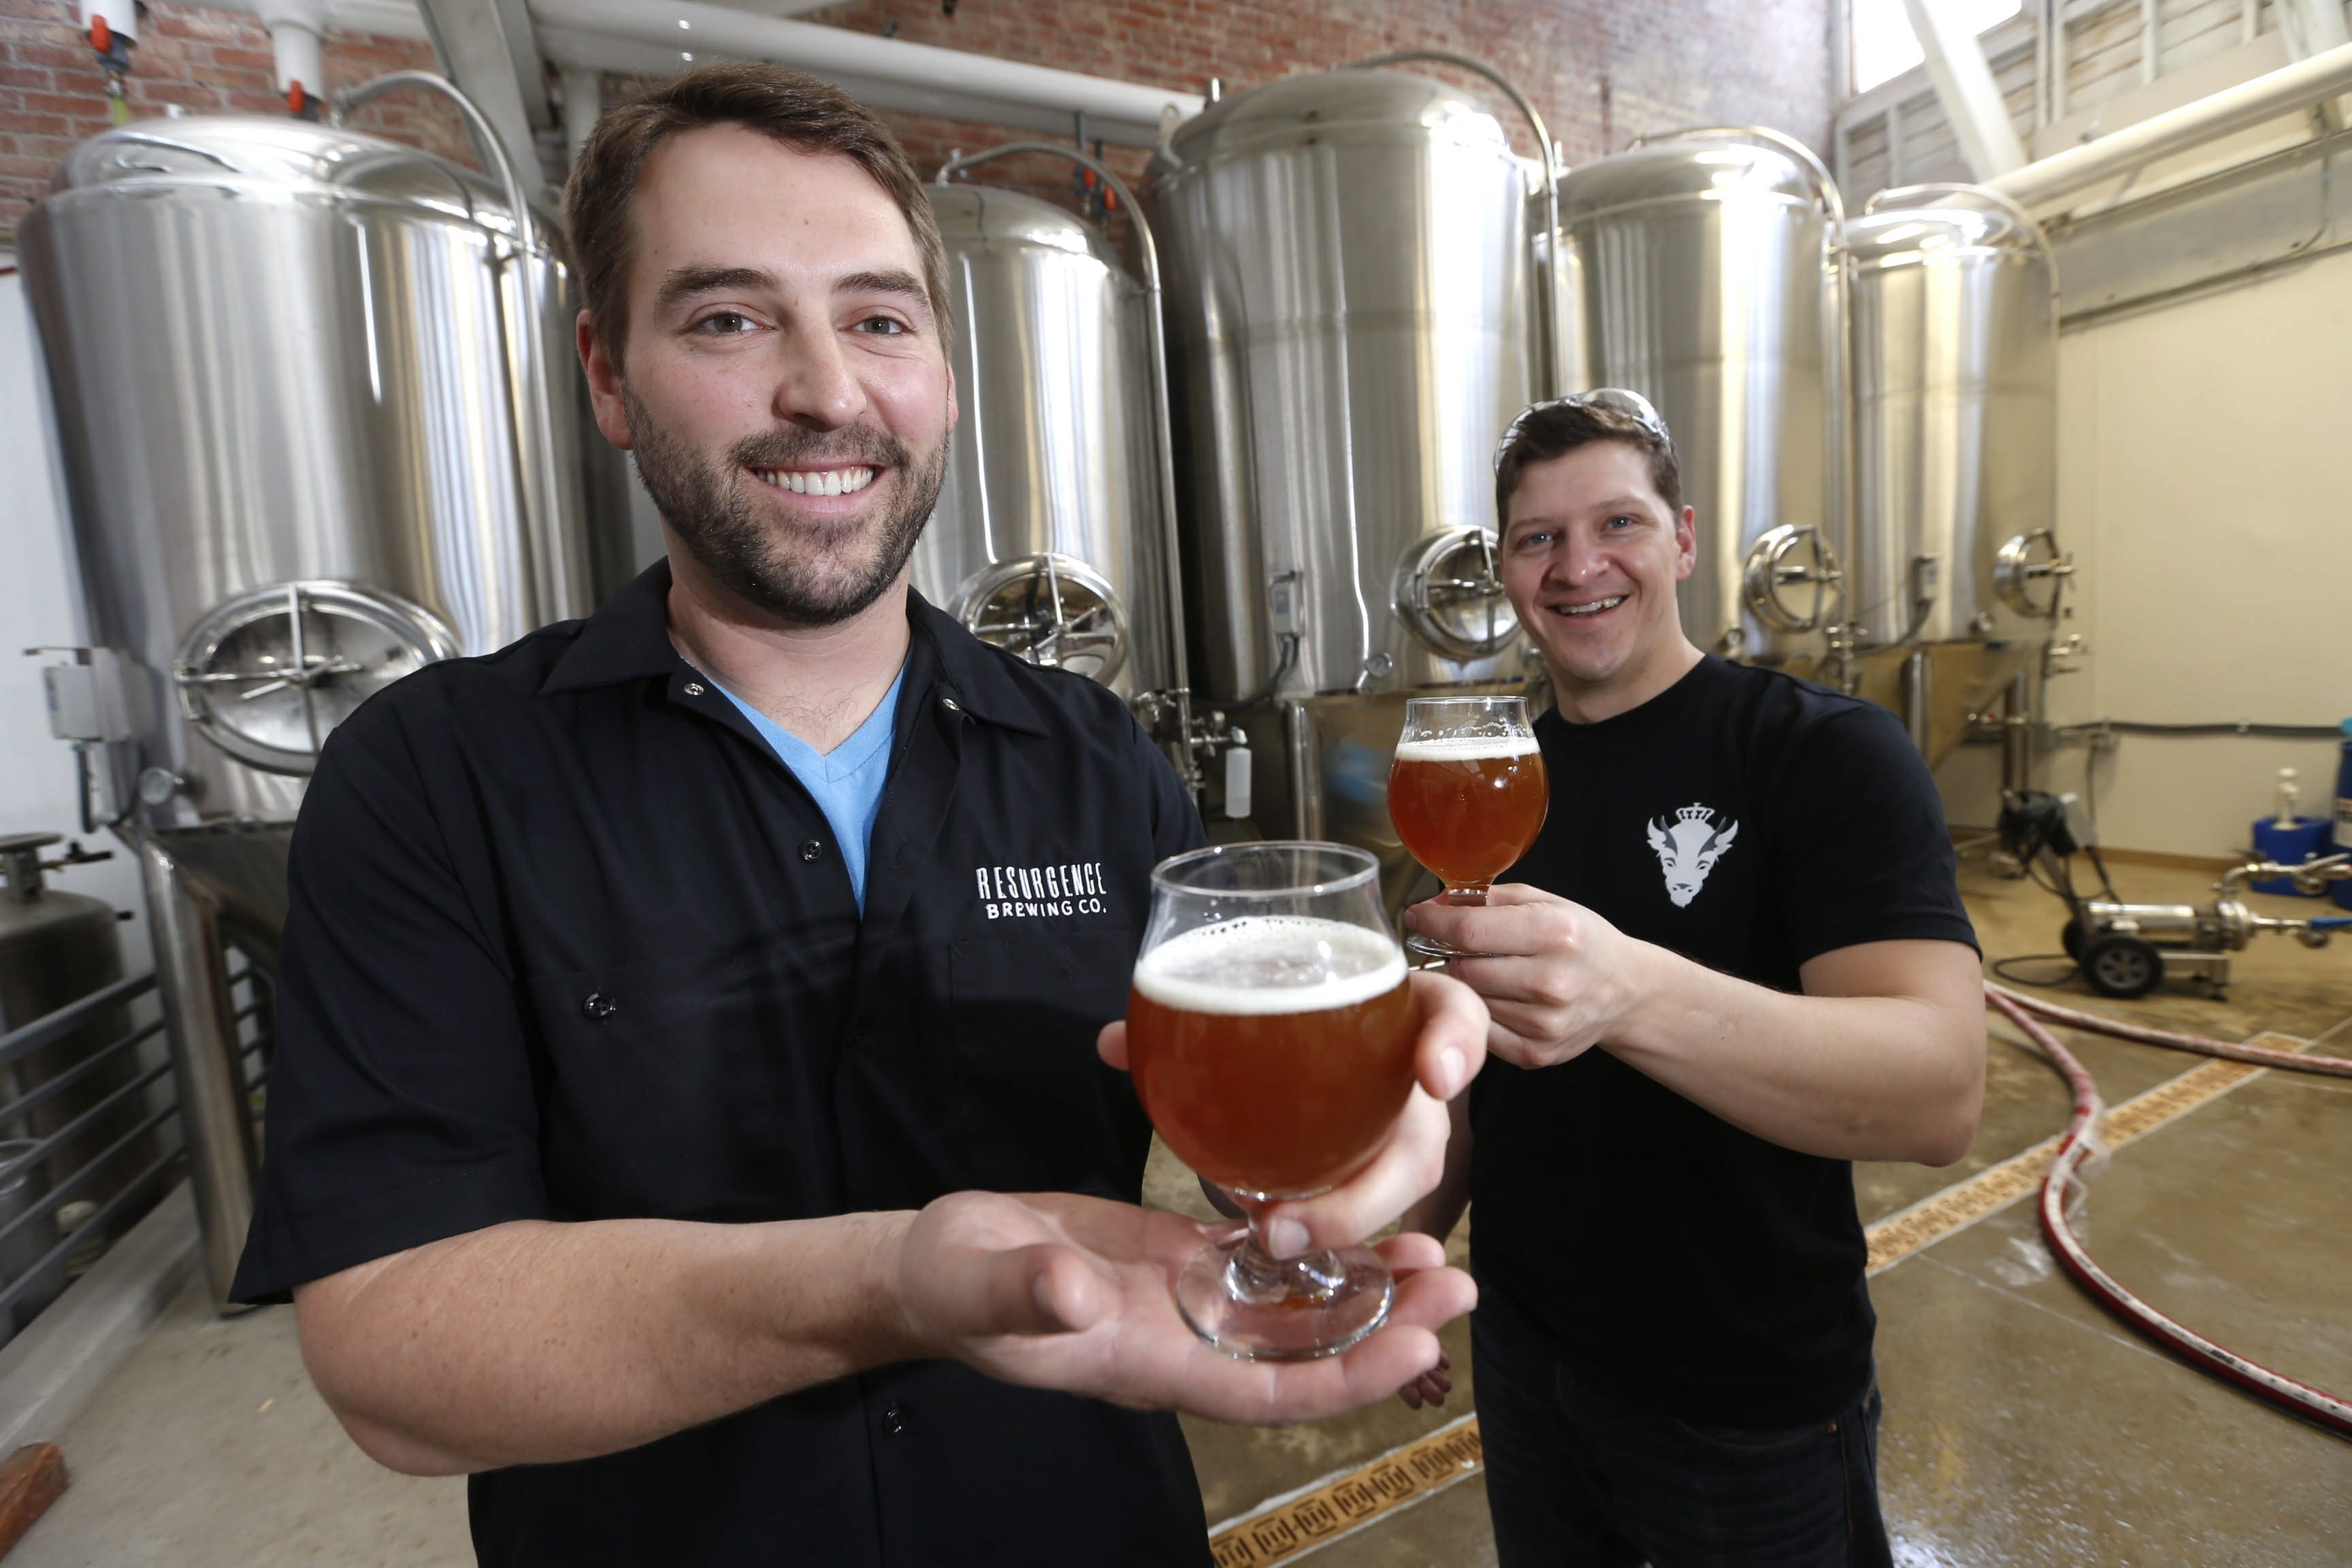 One of the newer craft brewers in Western New York is Resurgence Brewing Co. on Niagara Street. Shown here are owner Jeff Ware, left, and master brewer Dave Collins.